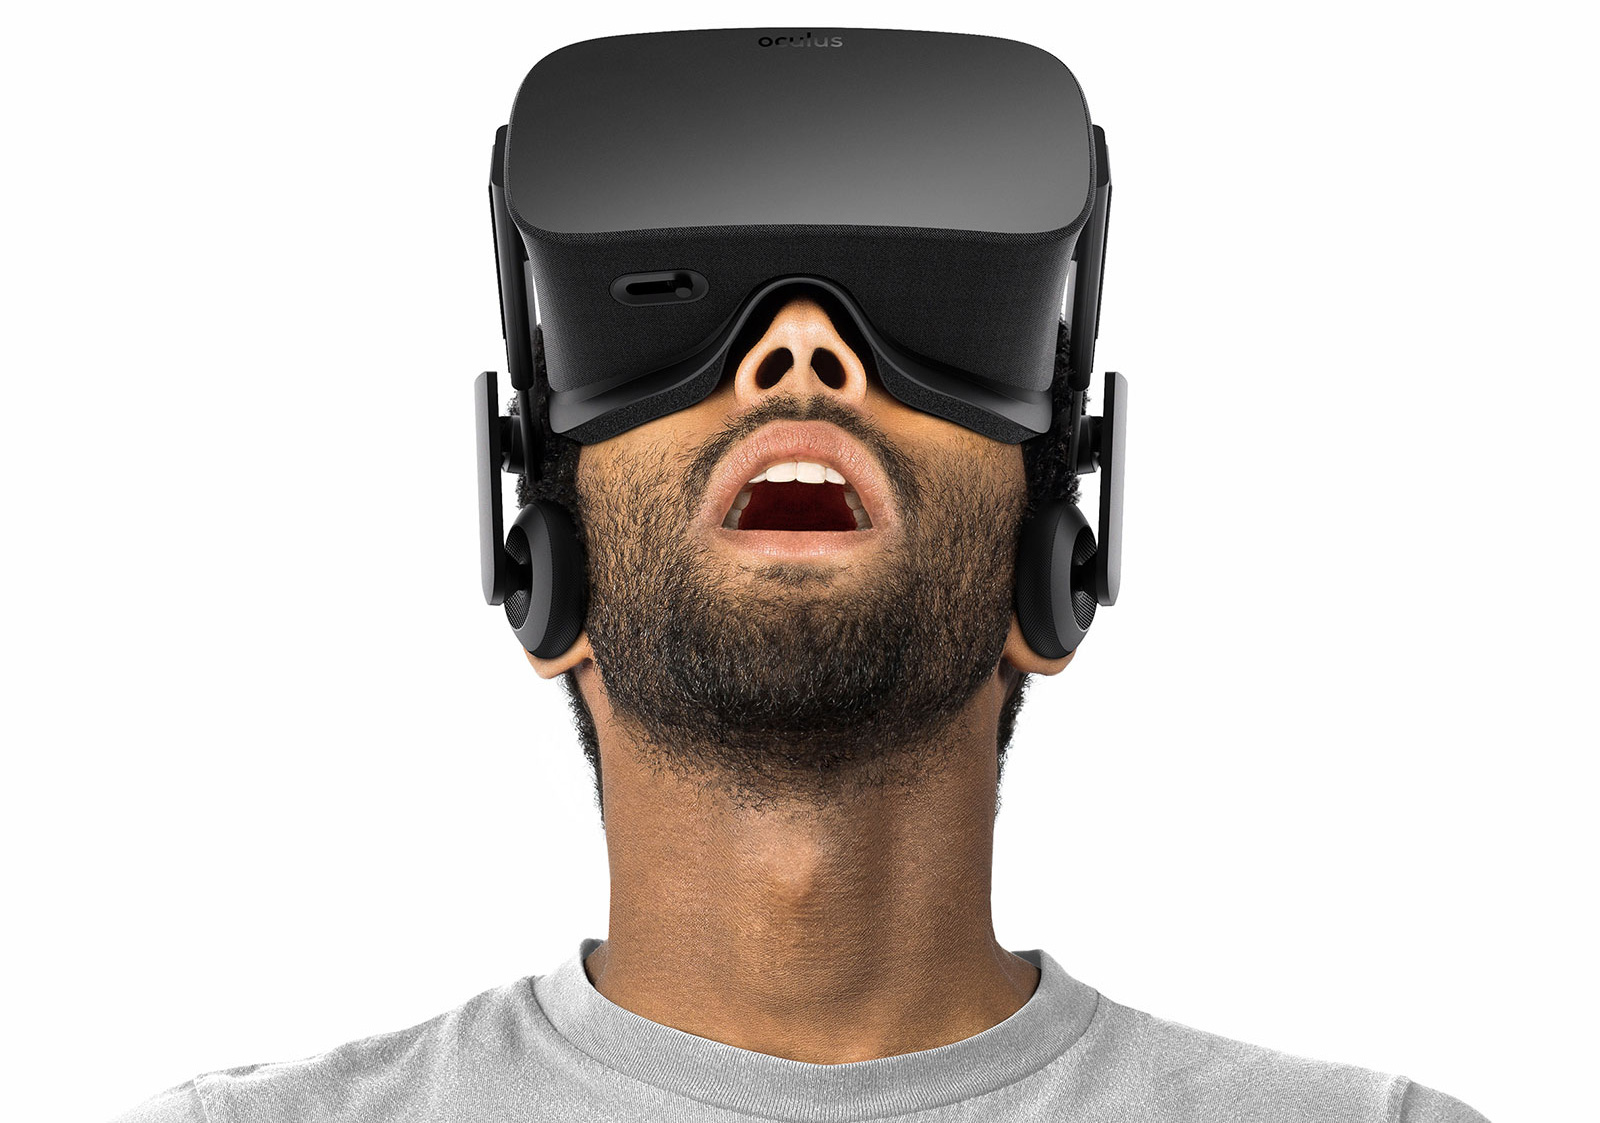 Oculus Rift Launch Disaster - Delays, Customer Anger